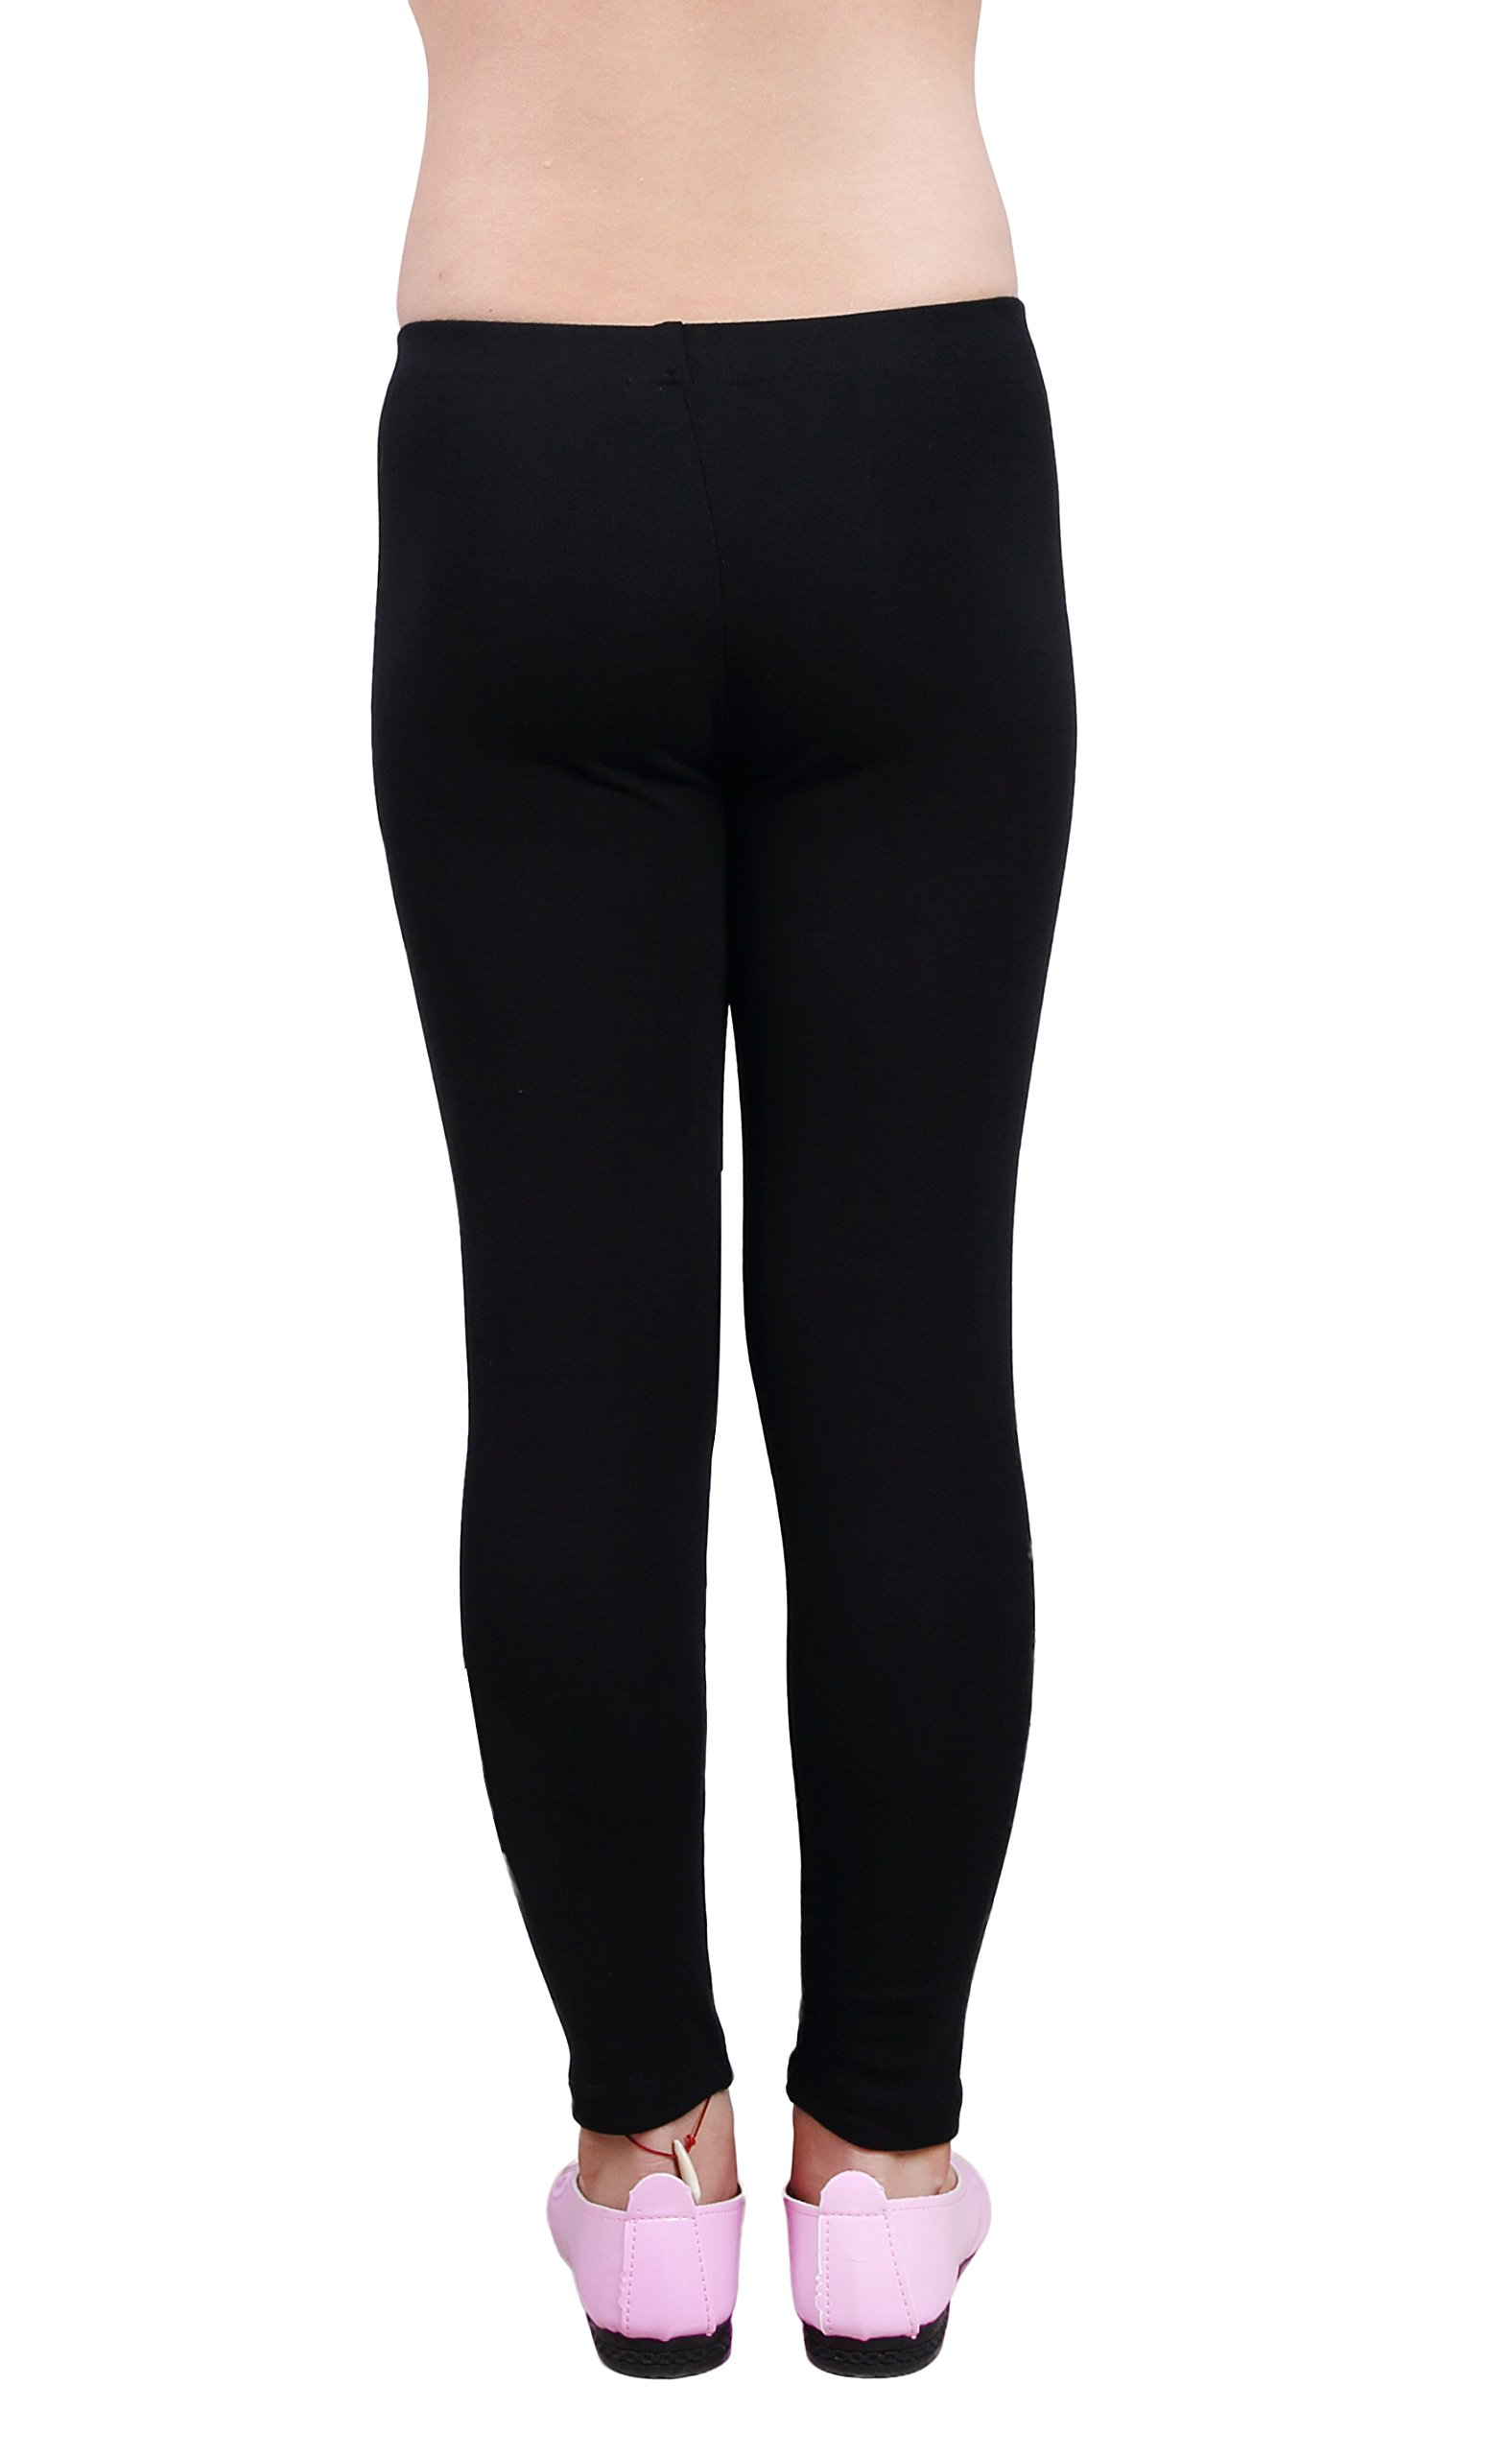 IRELIA Girls Leggings 3 Pack Cotton Solid Size 4-16 Spring/Fall 03 L by IRELIA (Image #4)